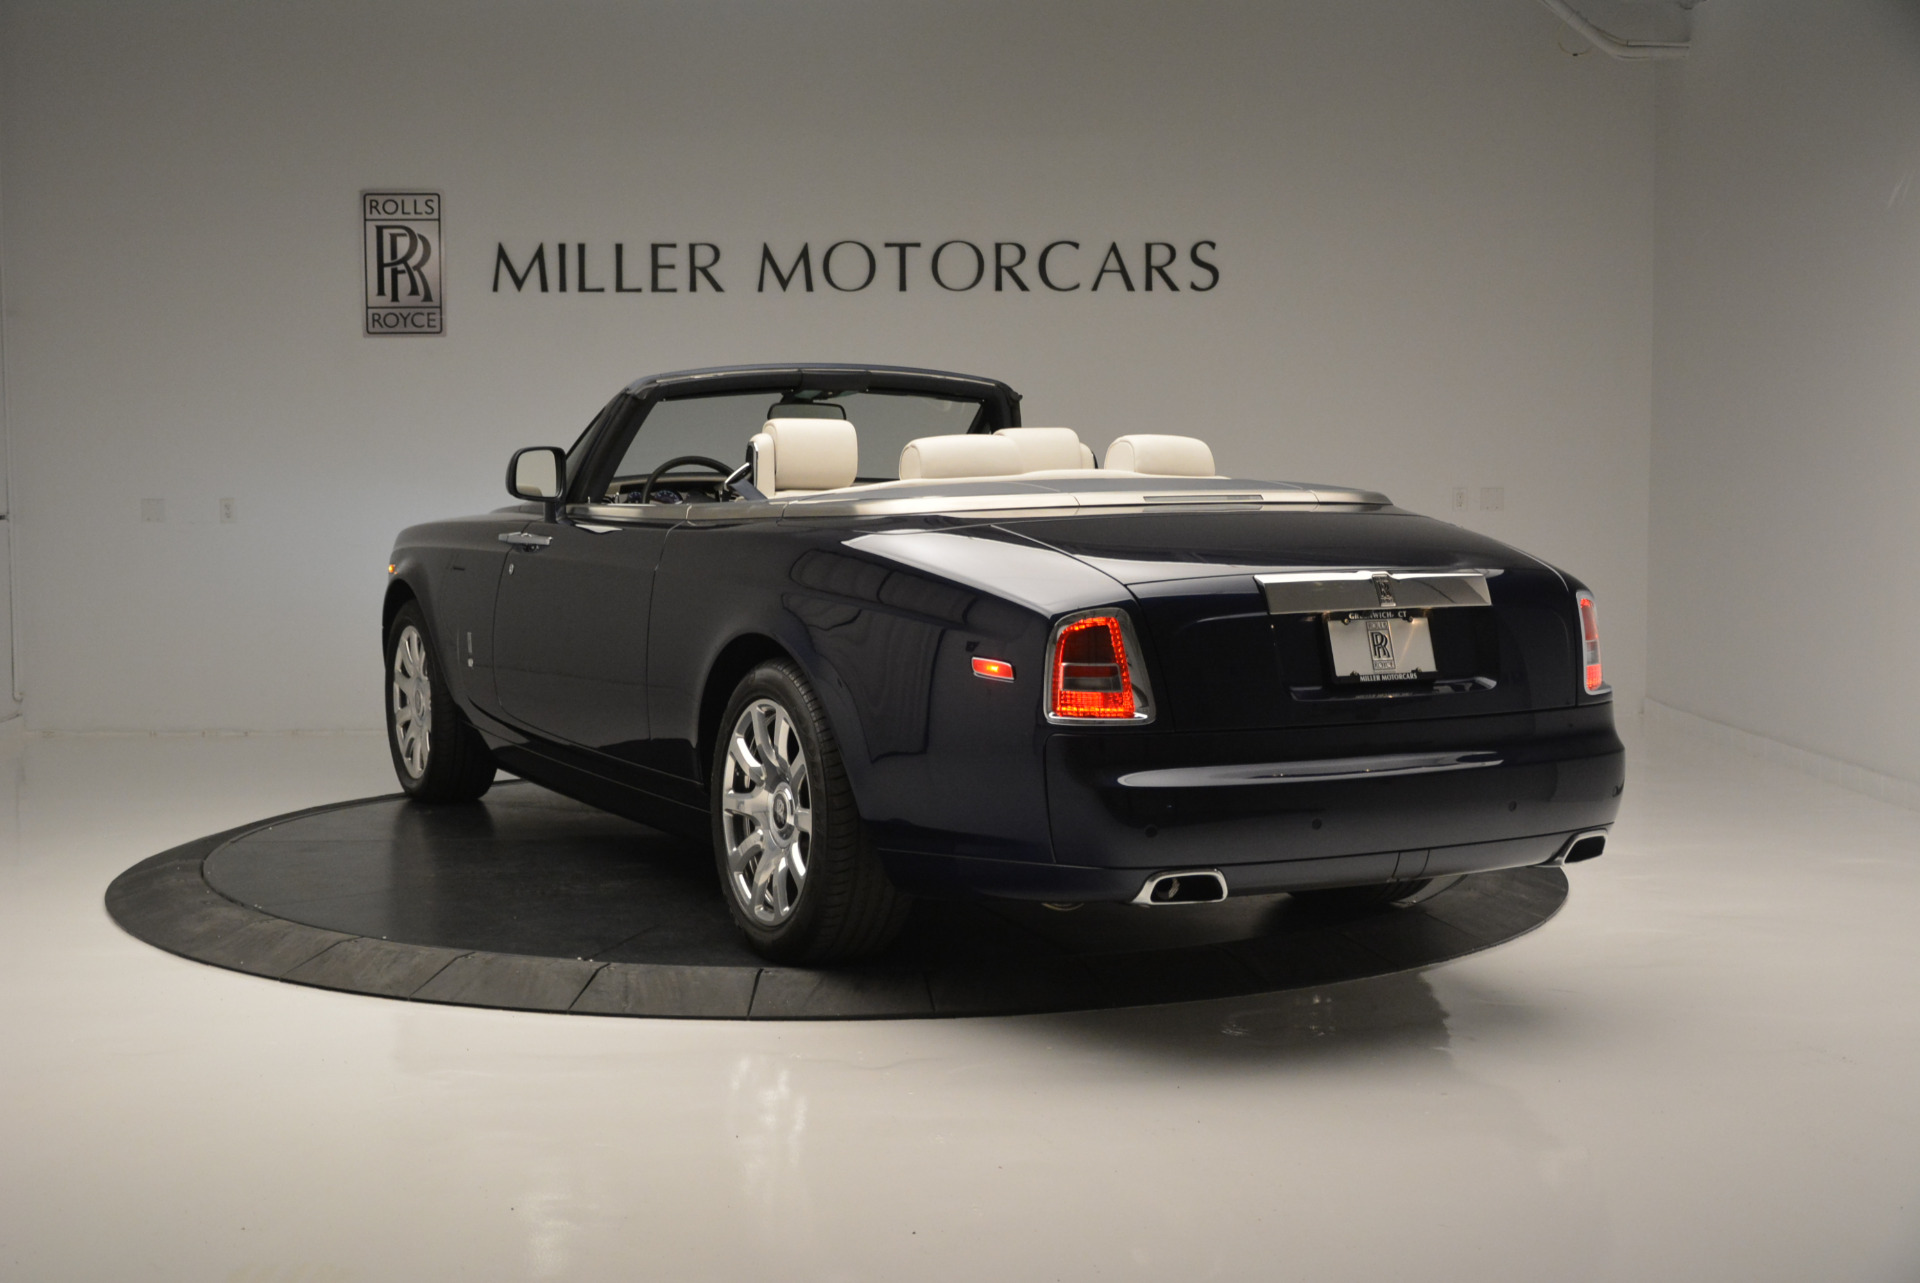 Used 2014 Rolls-Royce Phantom Drophead Coupe  For Sale In Westport, CT 2356_p3